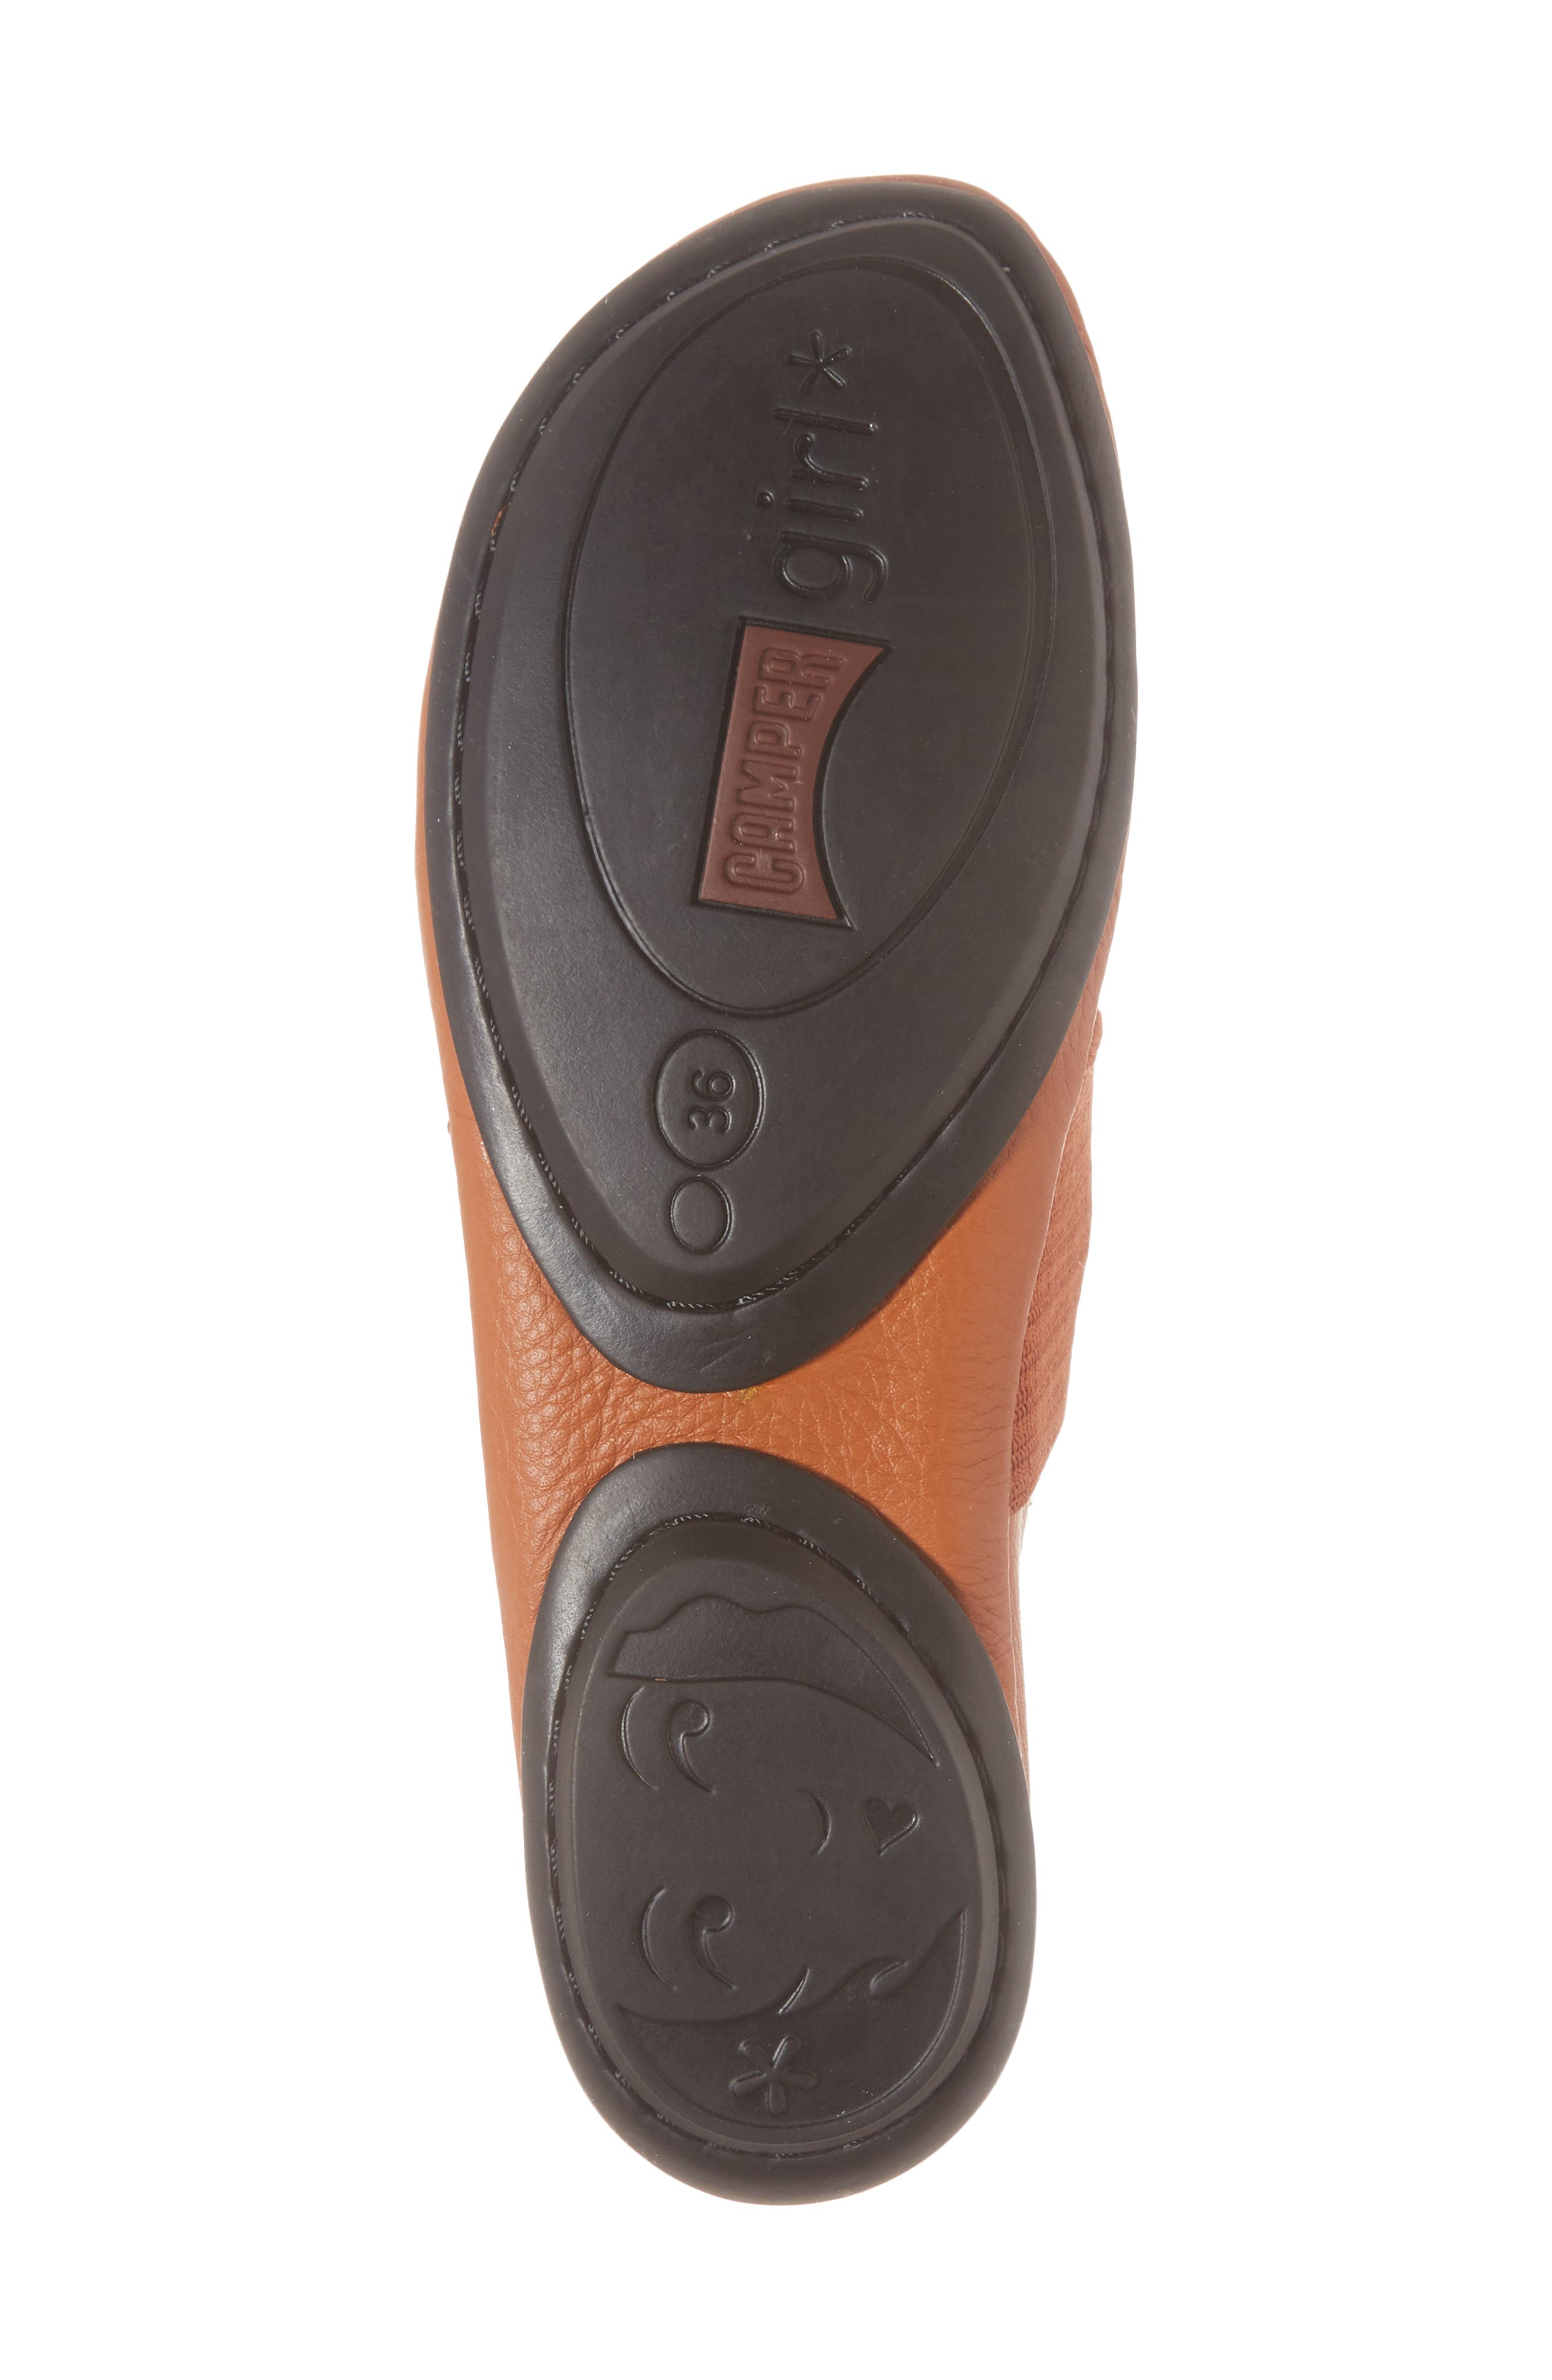 Right Nina Ballet Flat,                             Alternate thumbnail 6, color,                             RUST/COPPER LEATHER